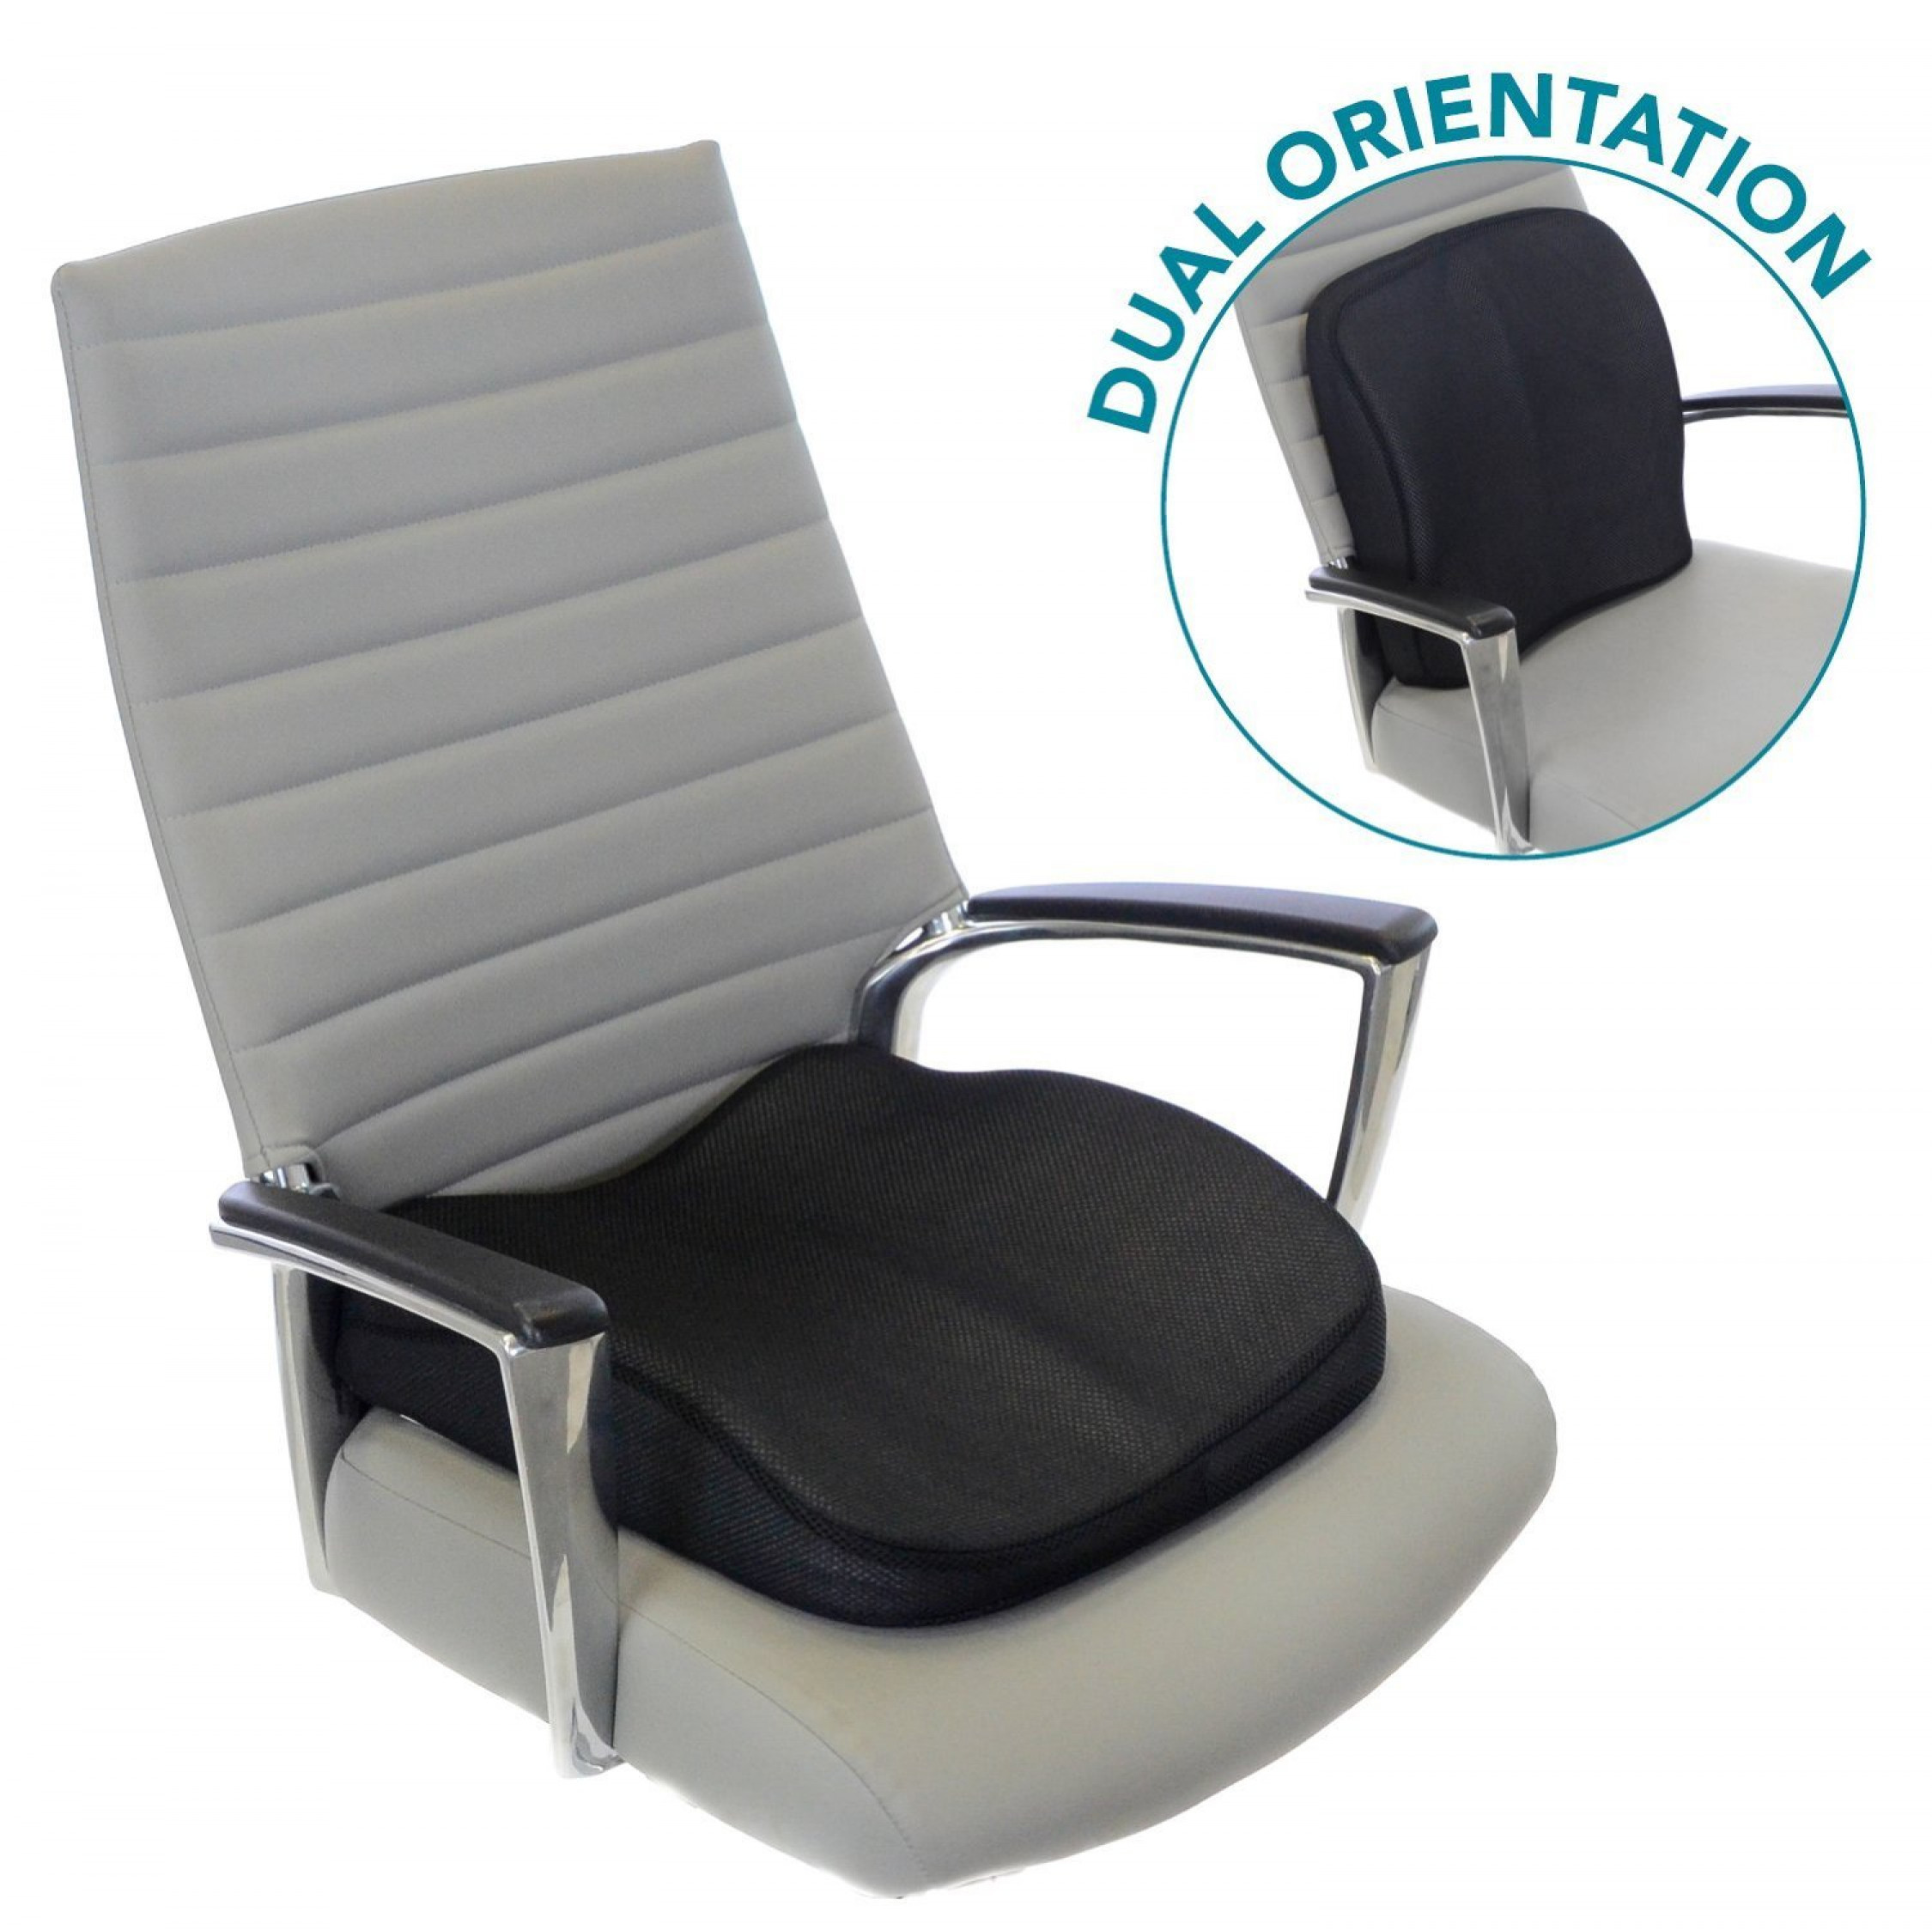 Image is loading Memory Foam Seat Cushion for Lower Back Support